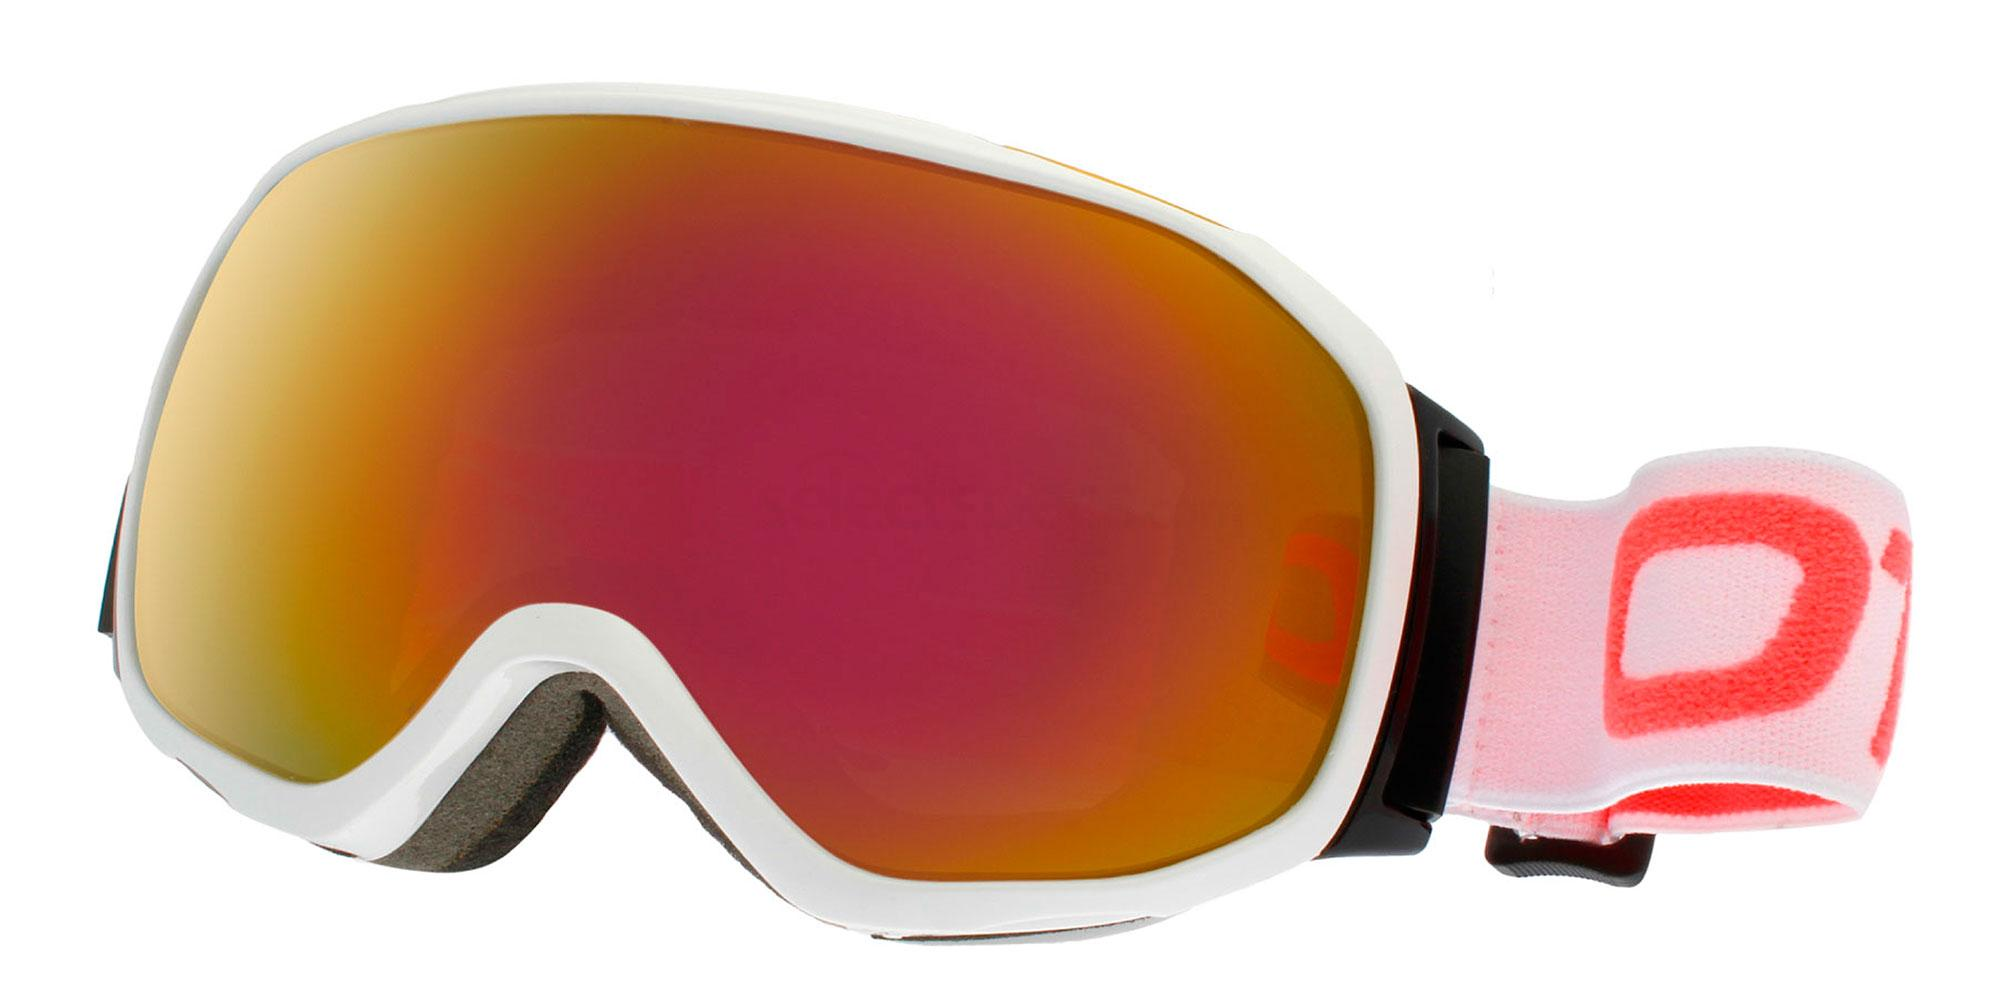 019901 TRANCE (Spherical Lens) Goggles, O'Neill